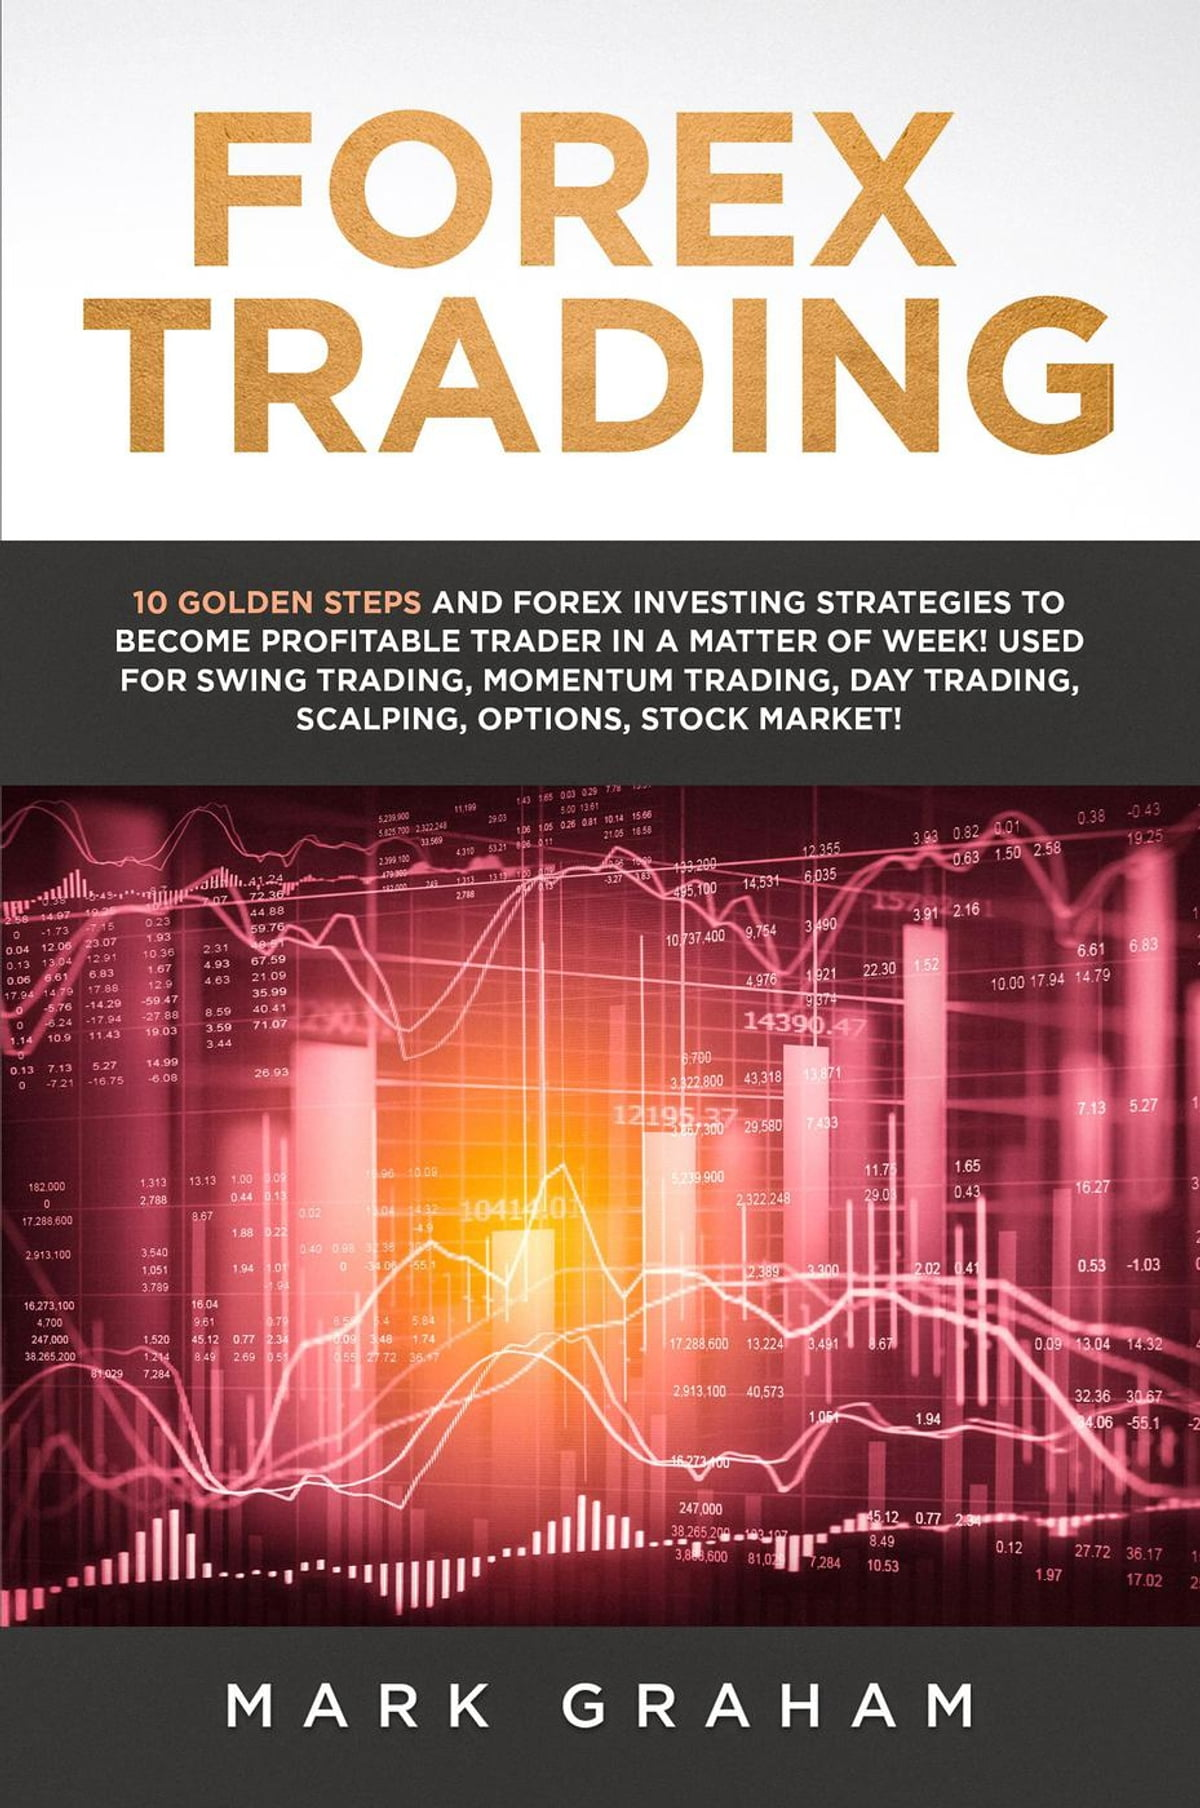 Can You Make Money Scalping Forex? - Forex Education